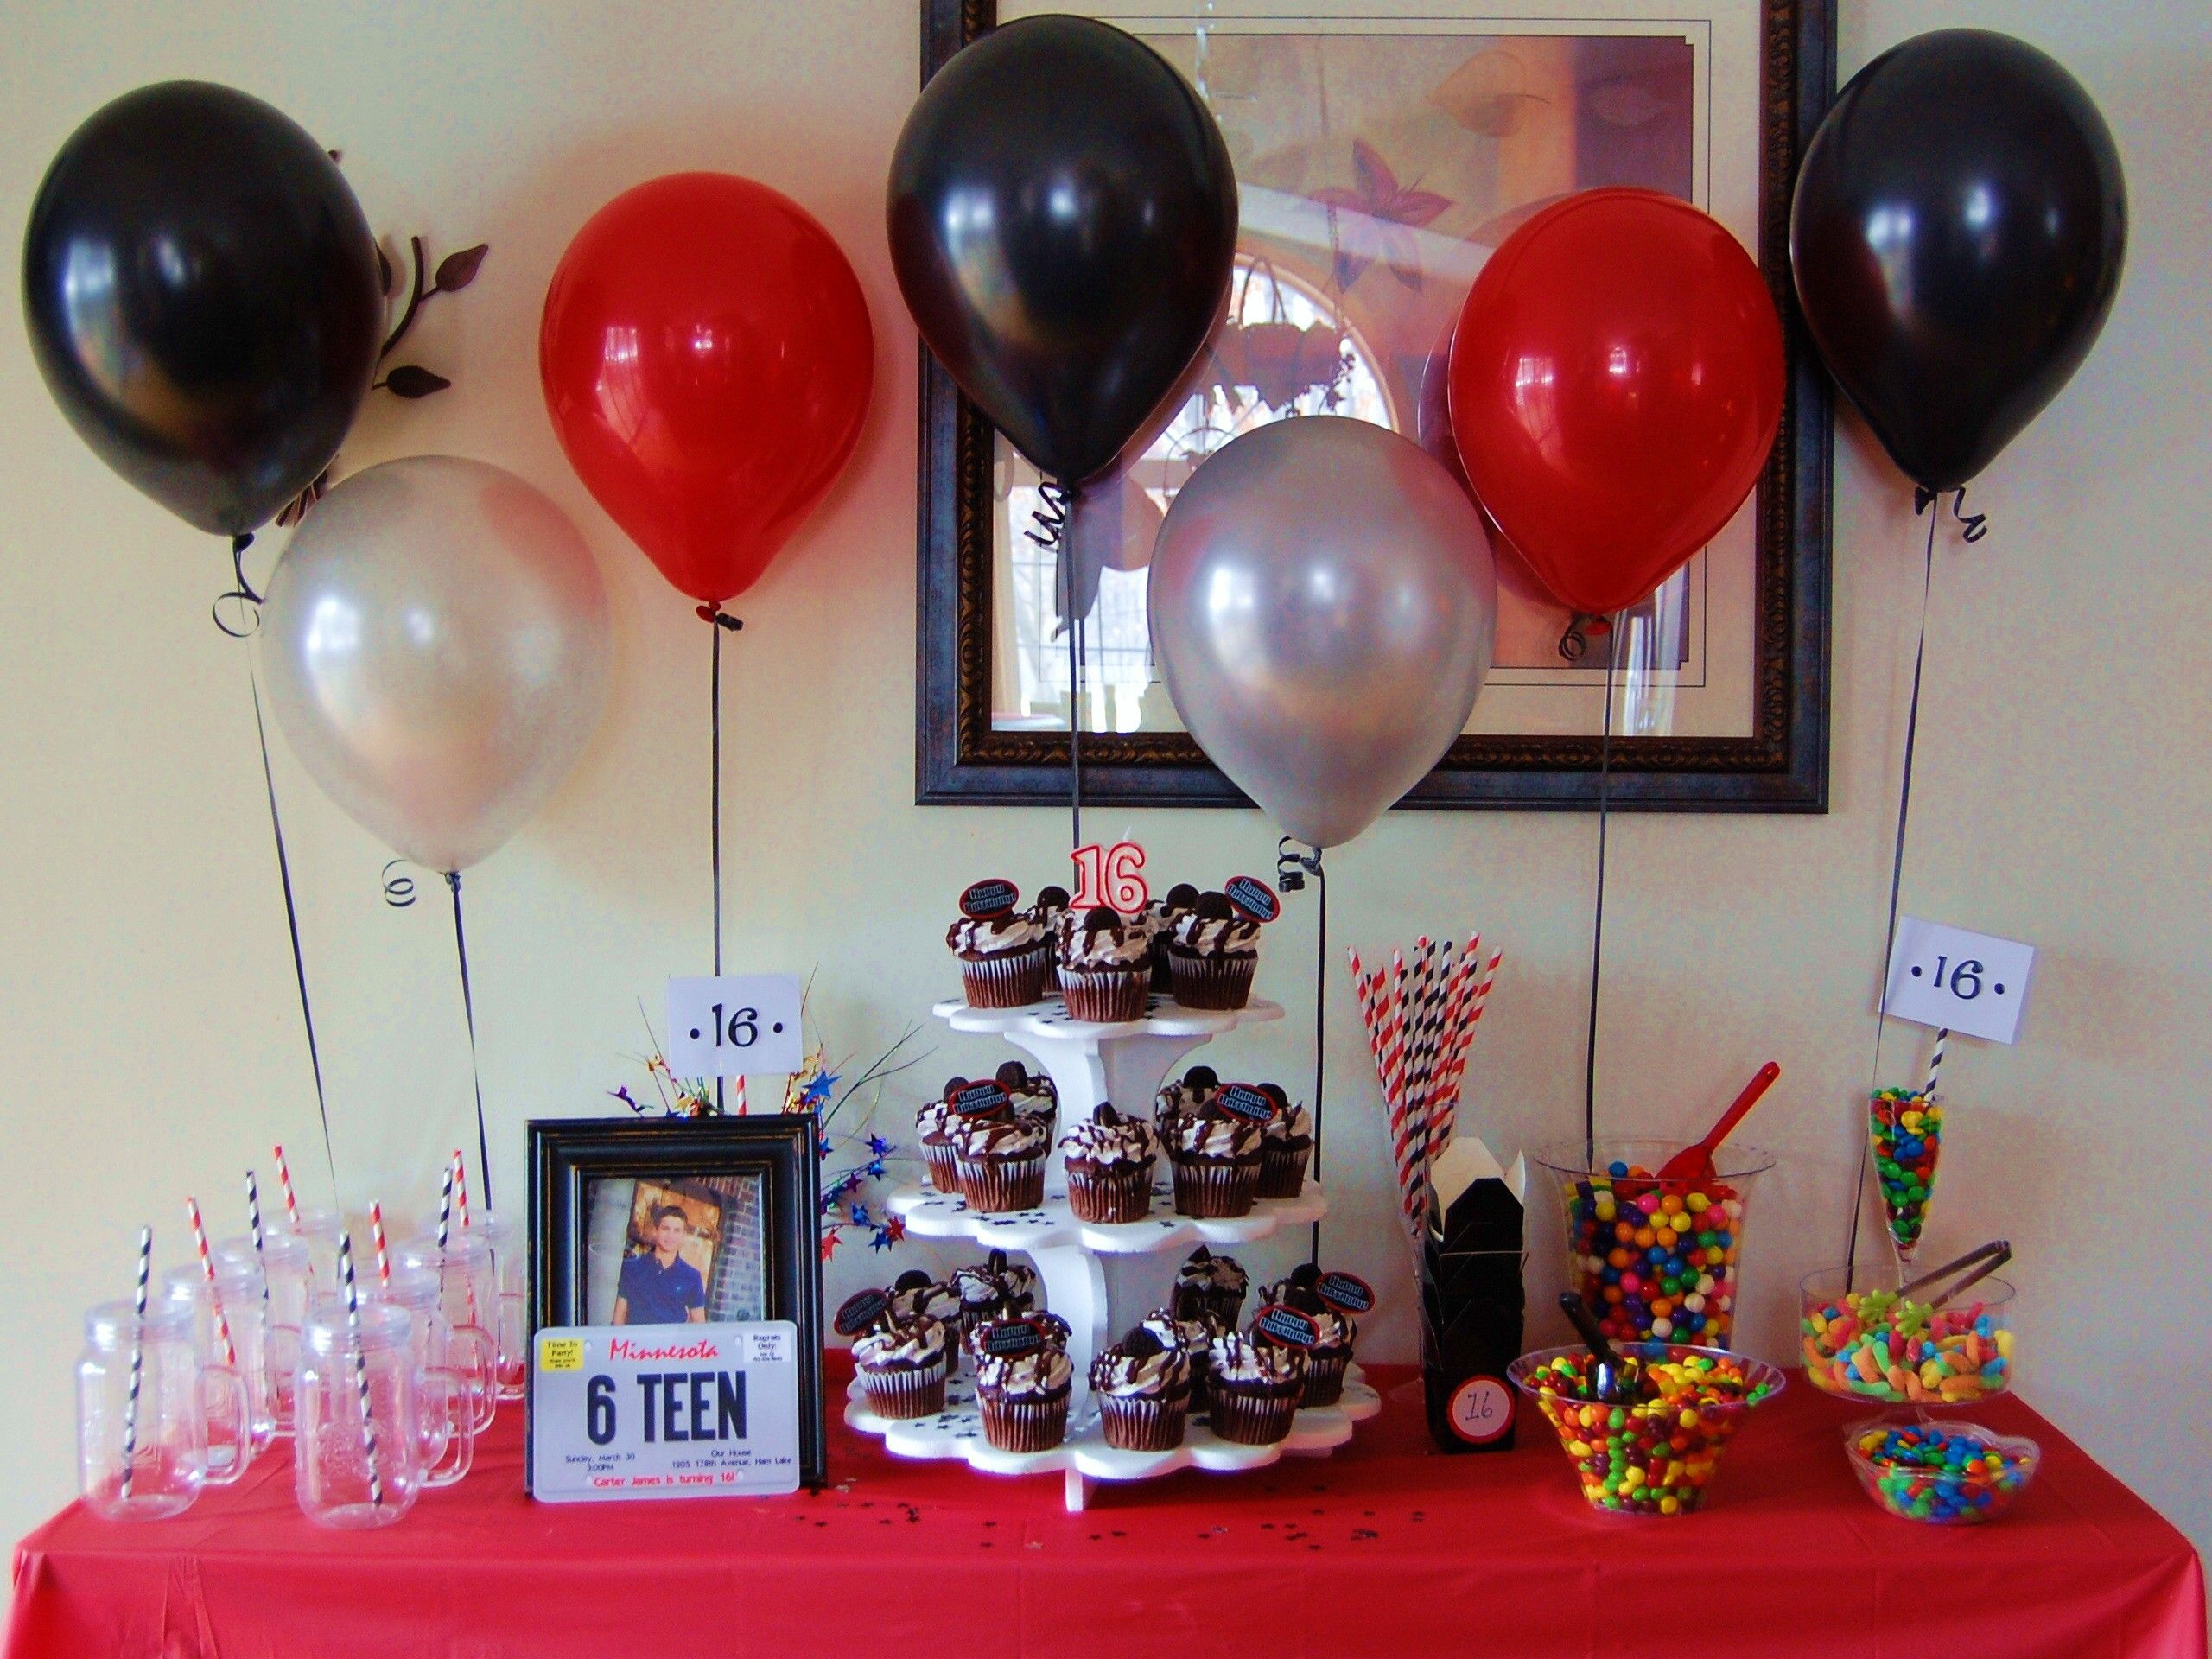 Sixth Birthday For A Guy Sweet Six Party Ideas And Decor Everywhere S But Hard To Come By Boys I Put Together This Tooth Buffet